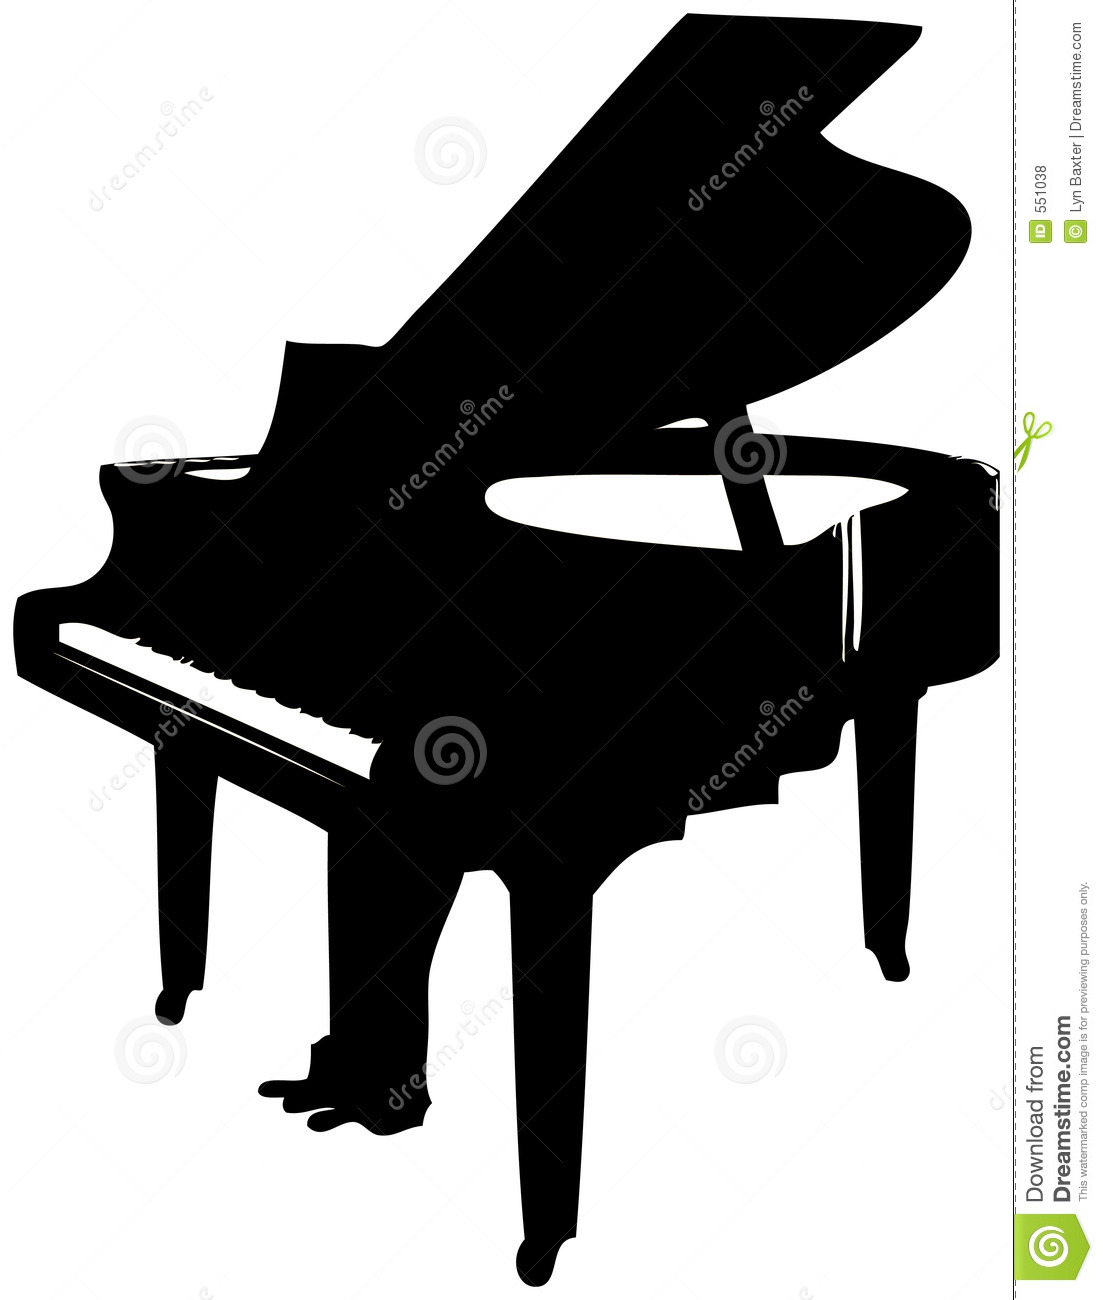 piano 20clipart 20black 20and   Upright Piano Clip Art Black And White